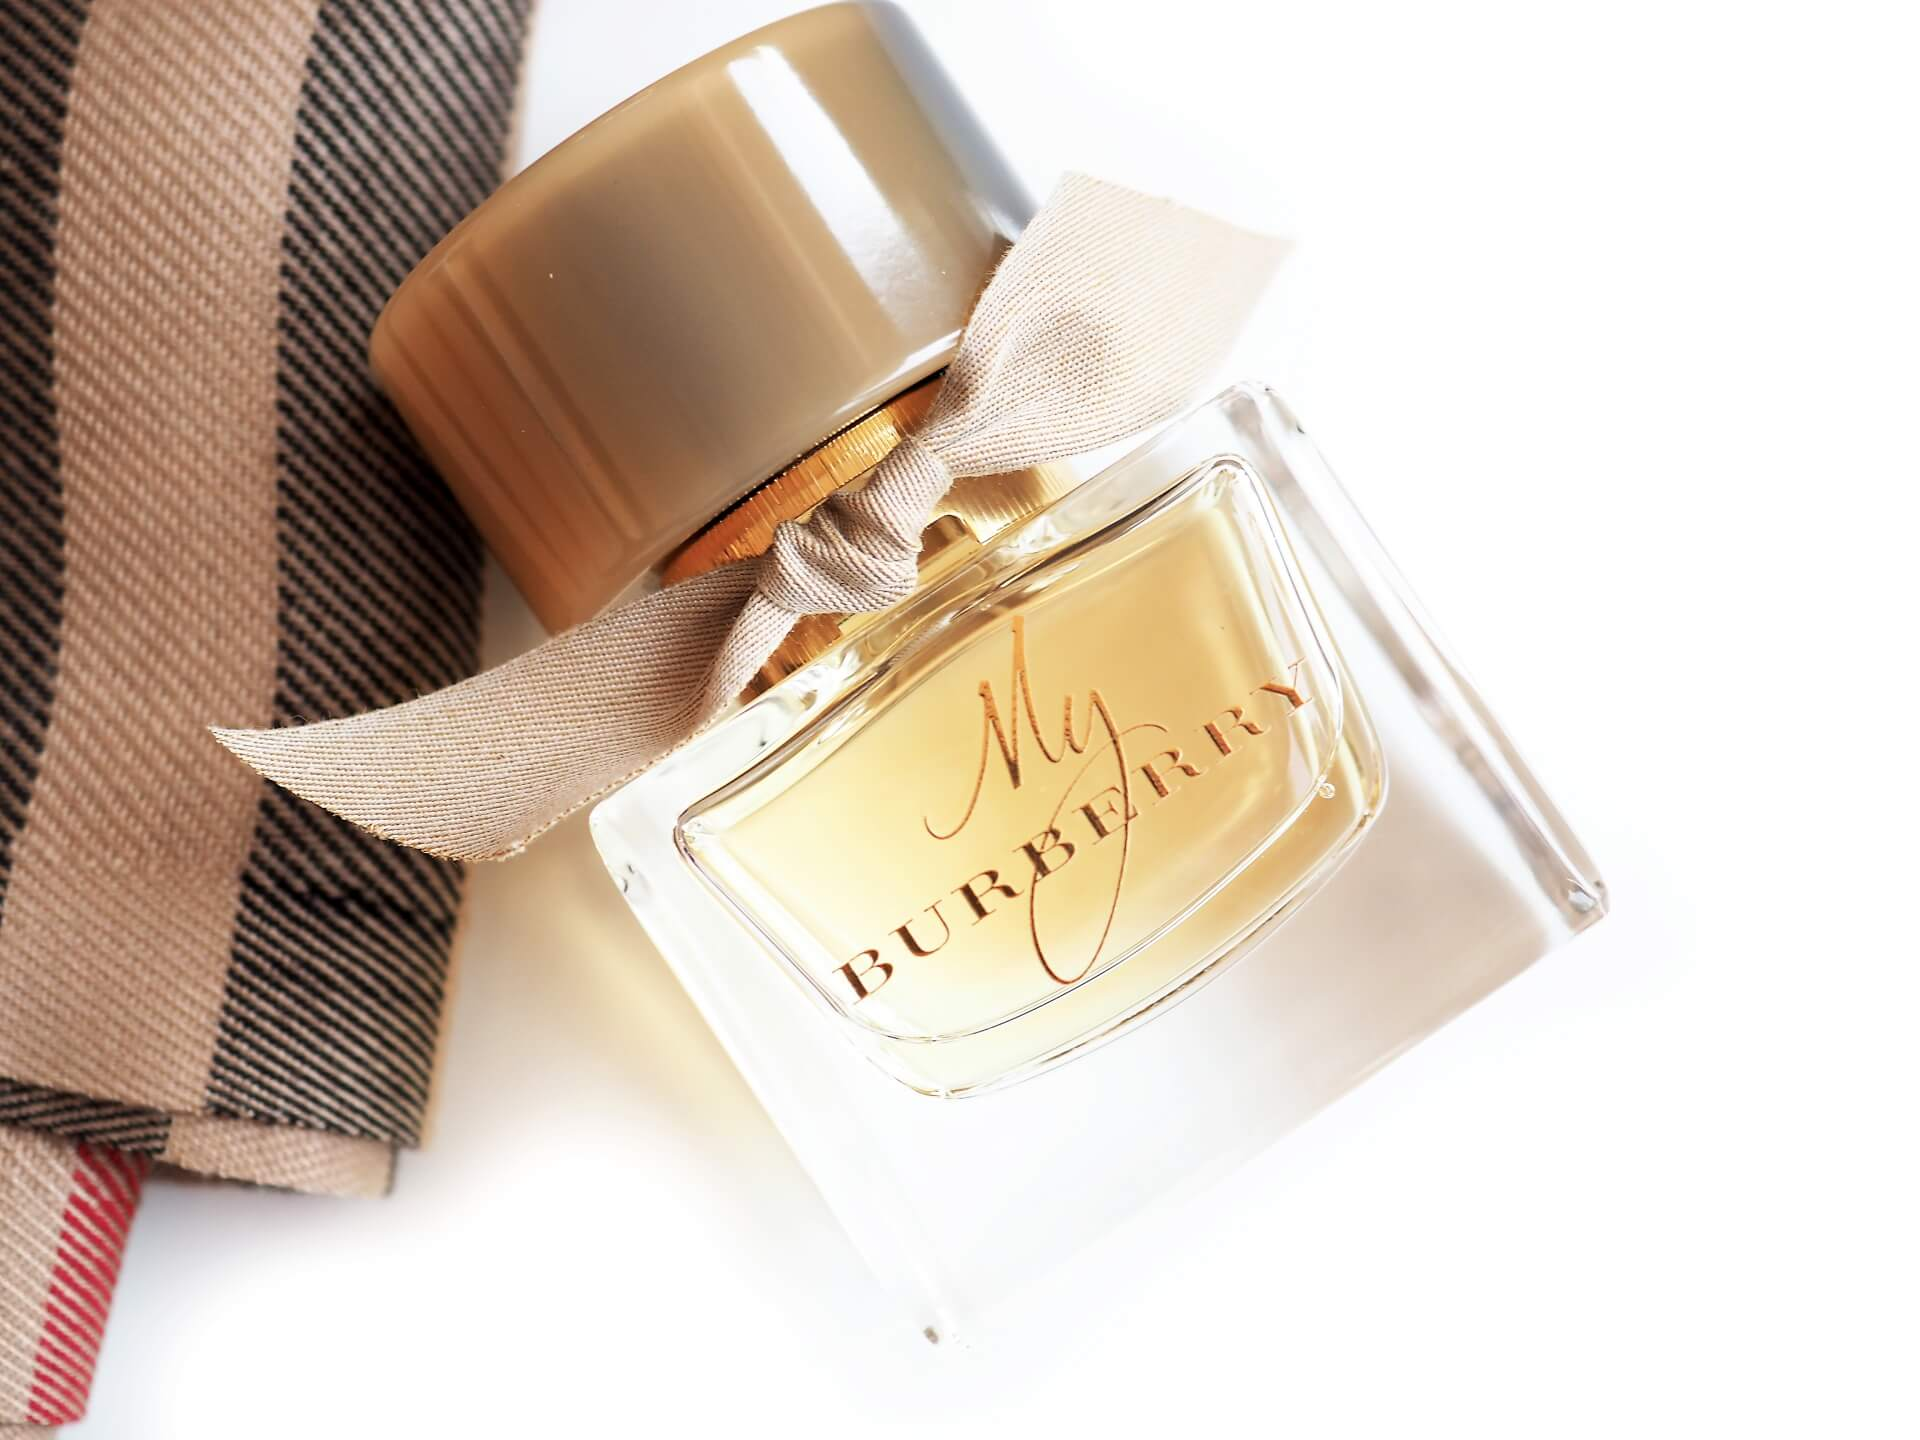 Burberry My Burberry Perfumy